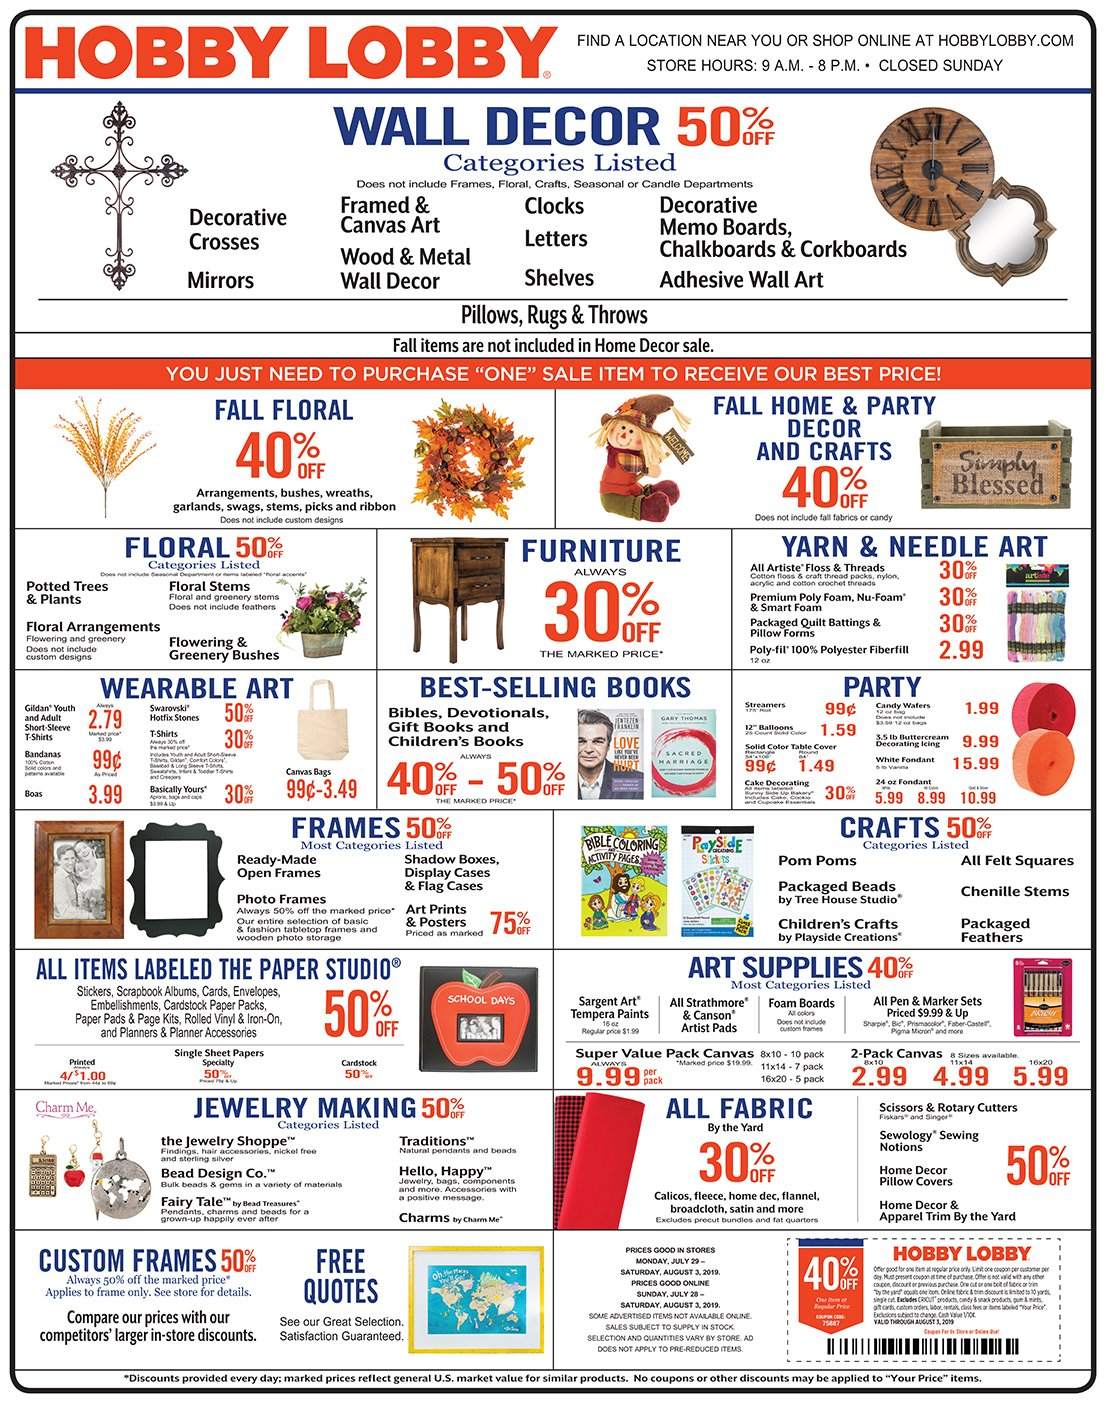 Weekly Ad & Coupon Calendar 2019 Hobby Lobby